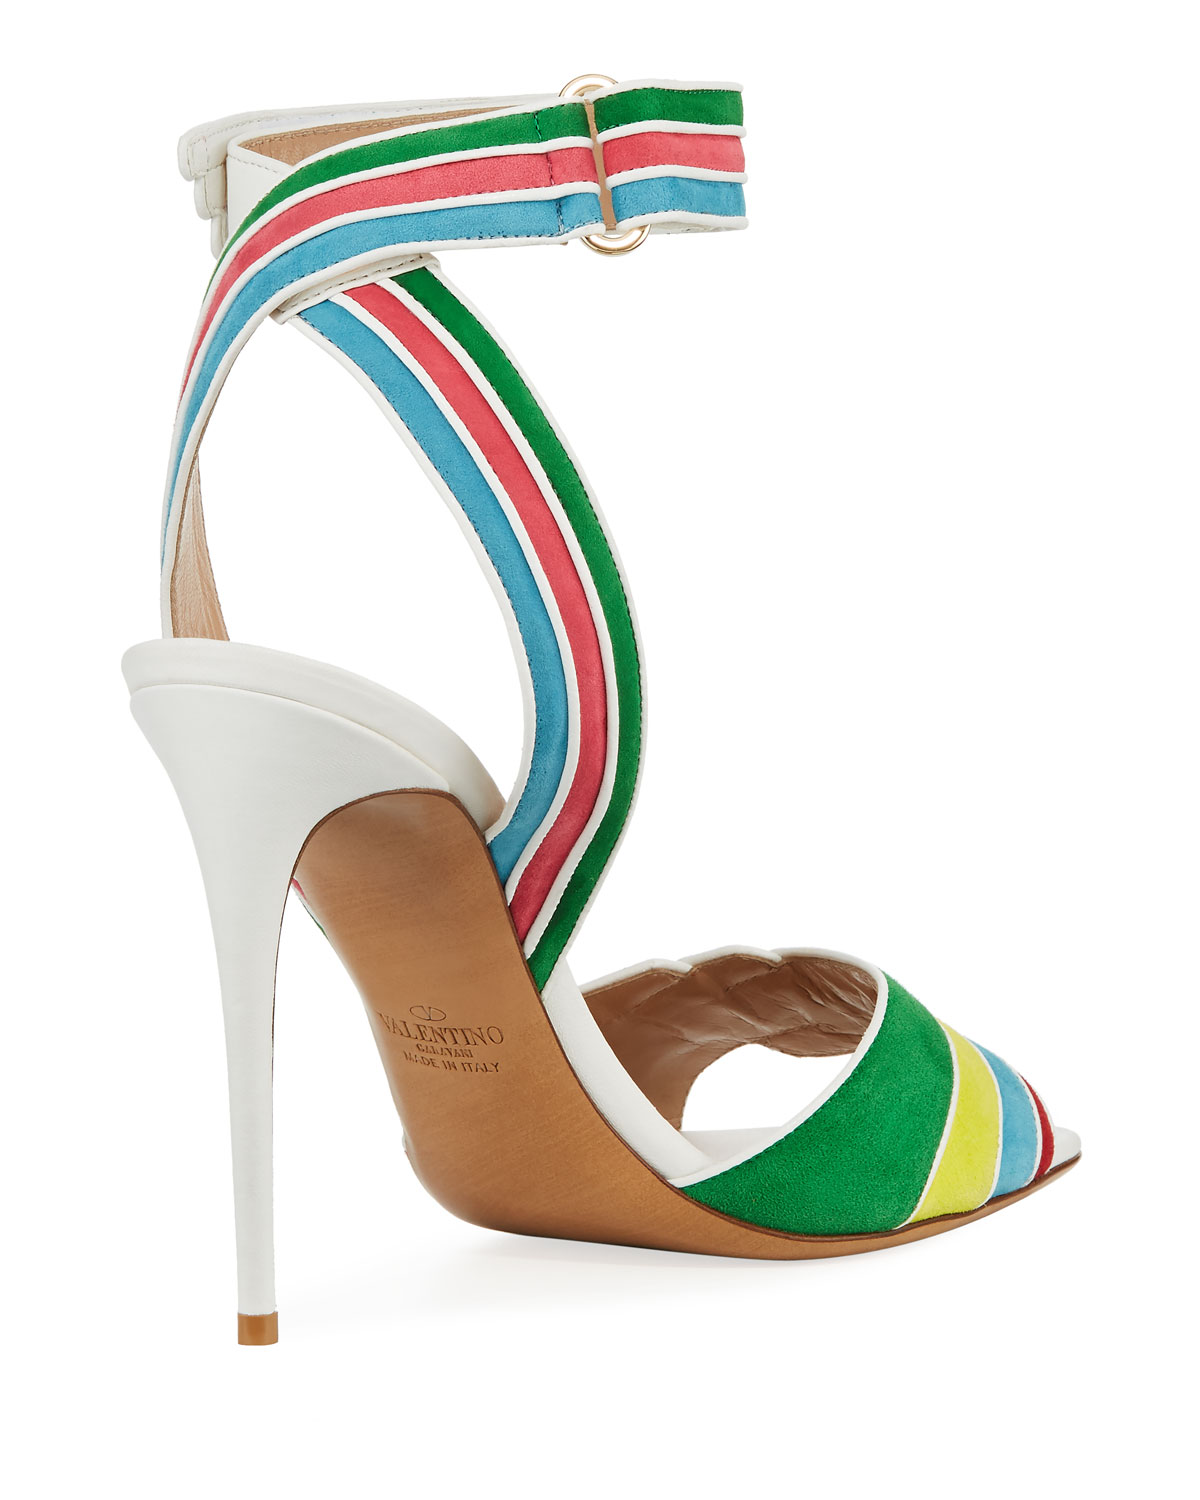 Rainbow Sandals with Ankle Strap in Multi Suede and Nappa Leathers Valentino sS4XeS